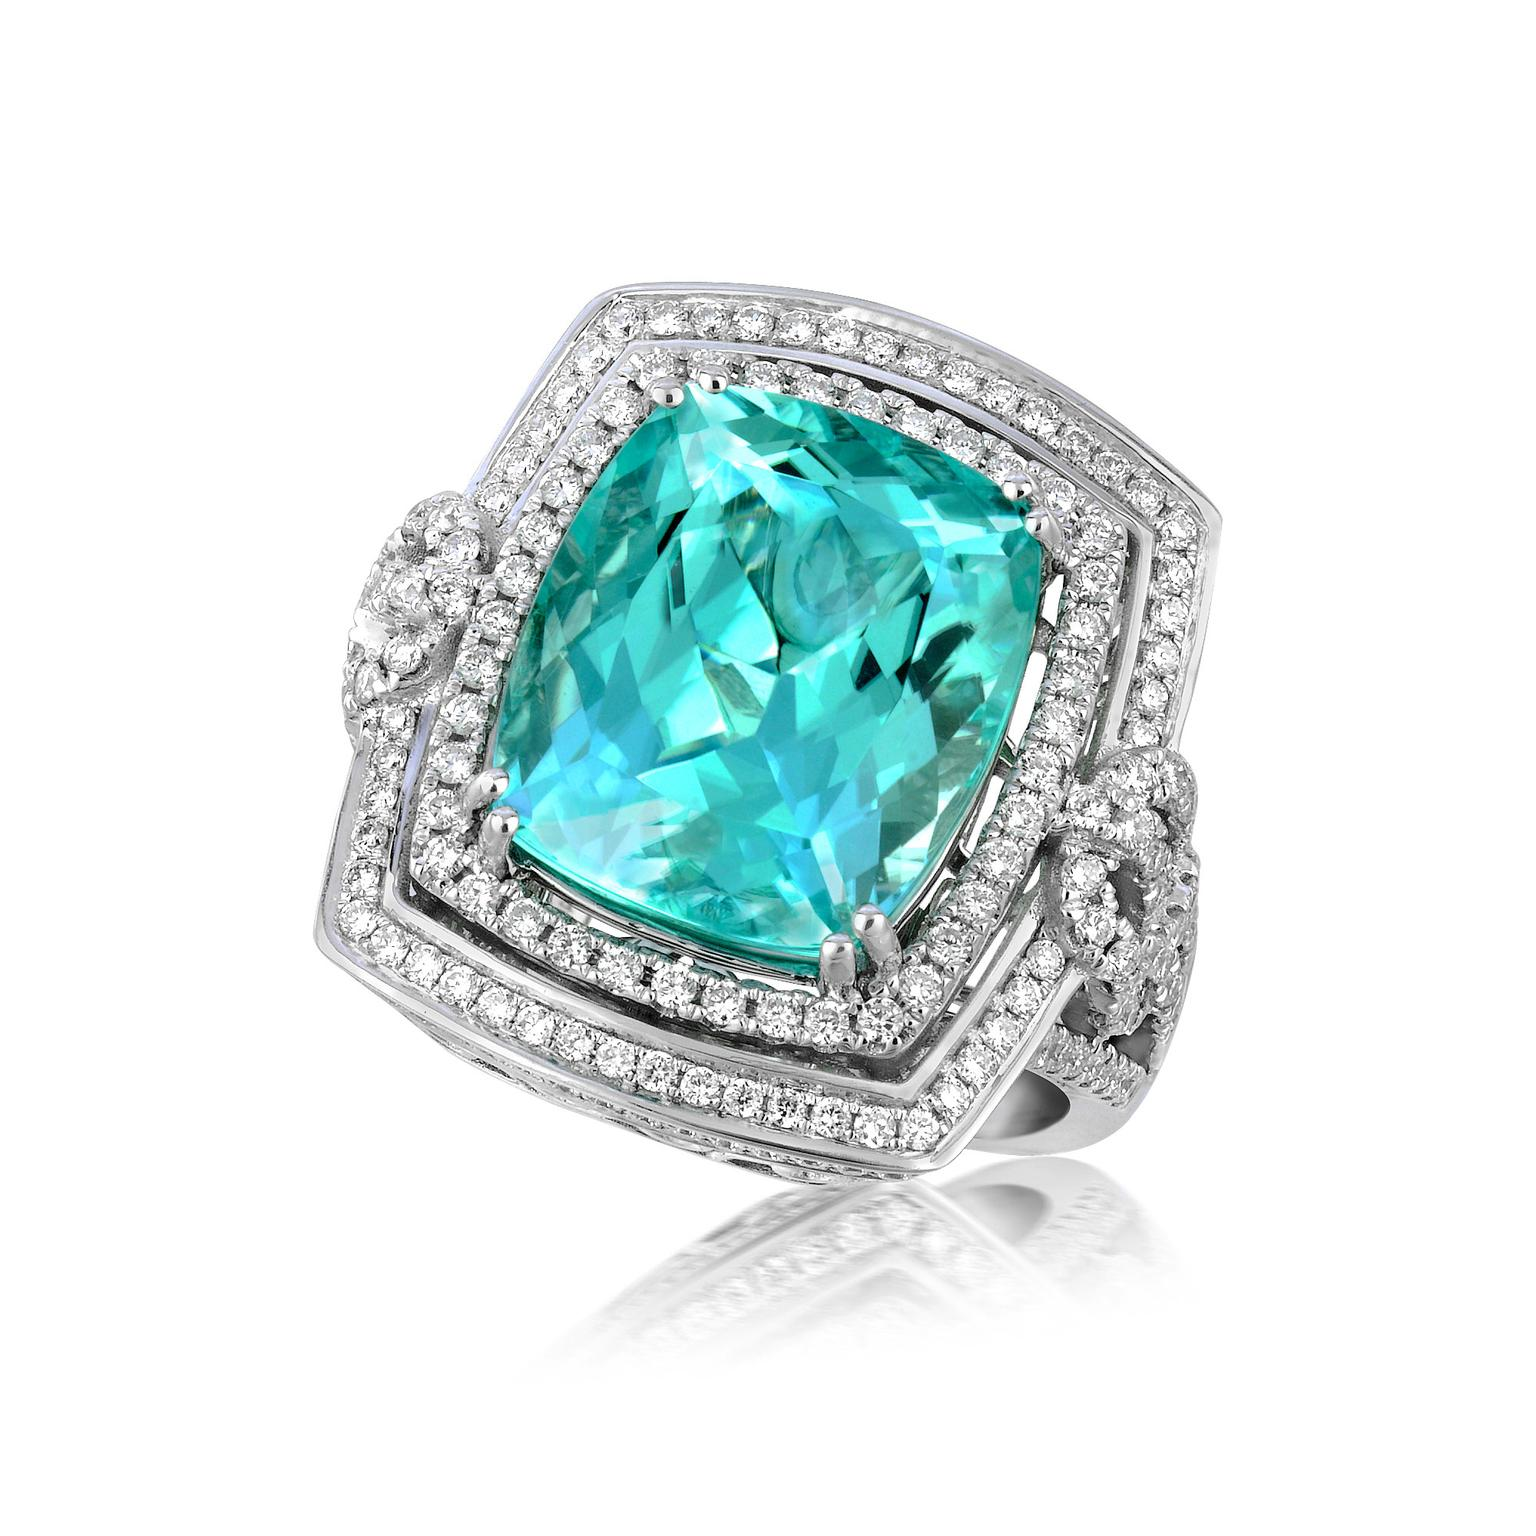 Mermaid Paraiba Tourmaline Ring With Diamonds Doris